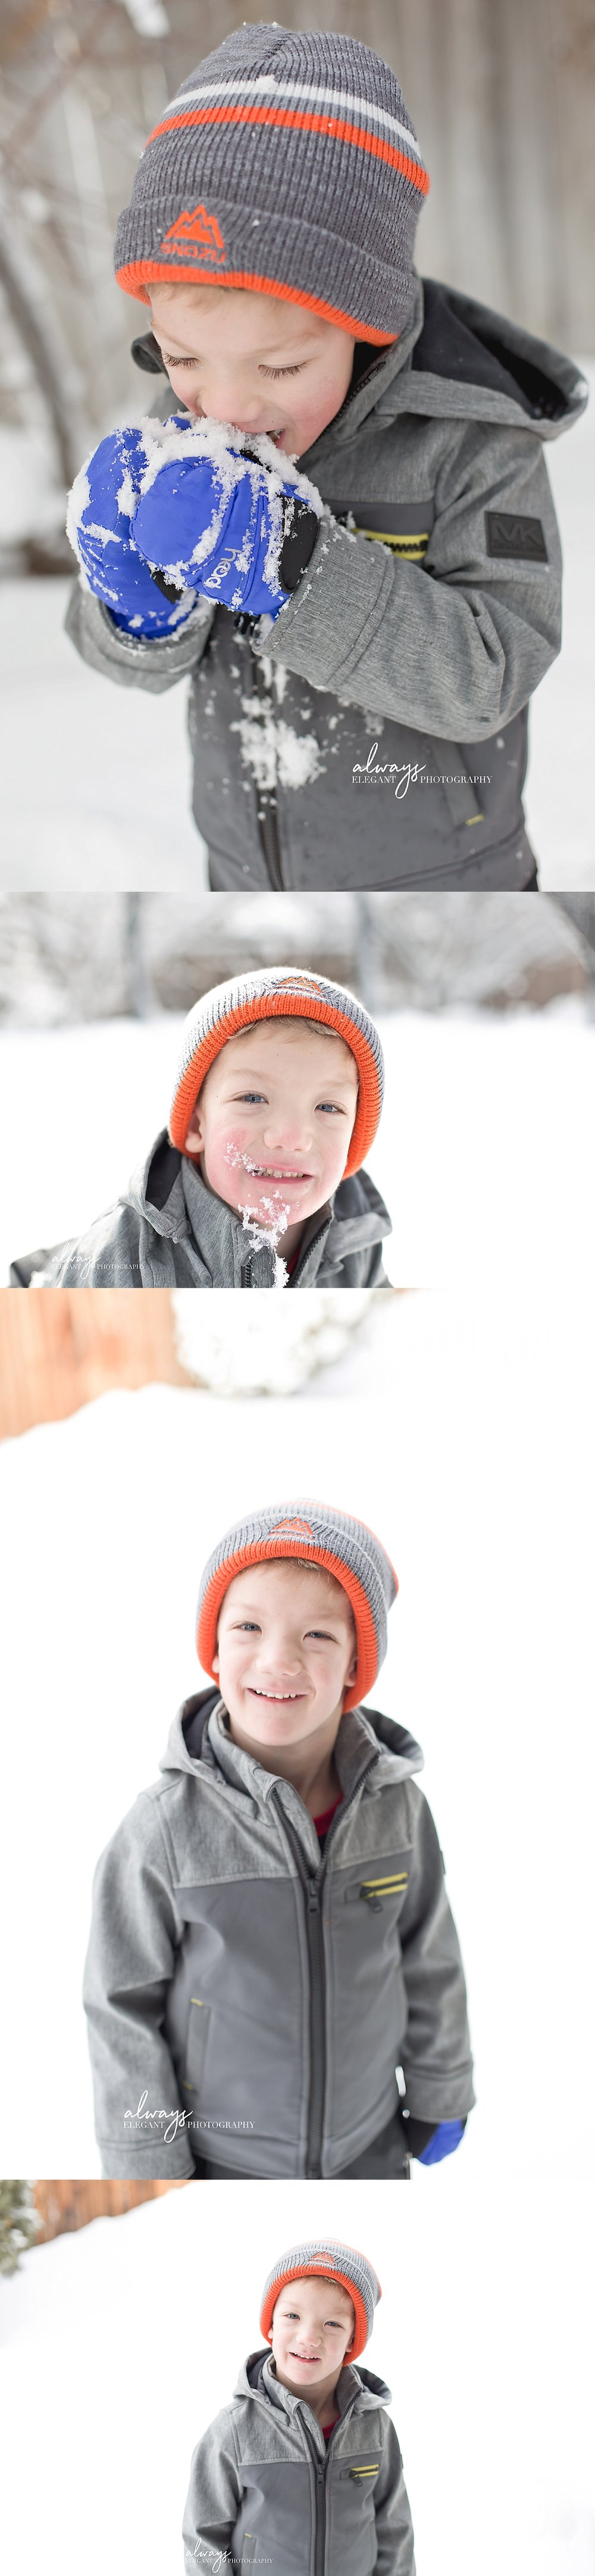 Taking-Pictures-In-The-Snow-Always-Elegant-Photography_0006.jpg